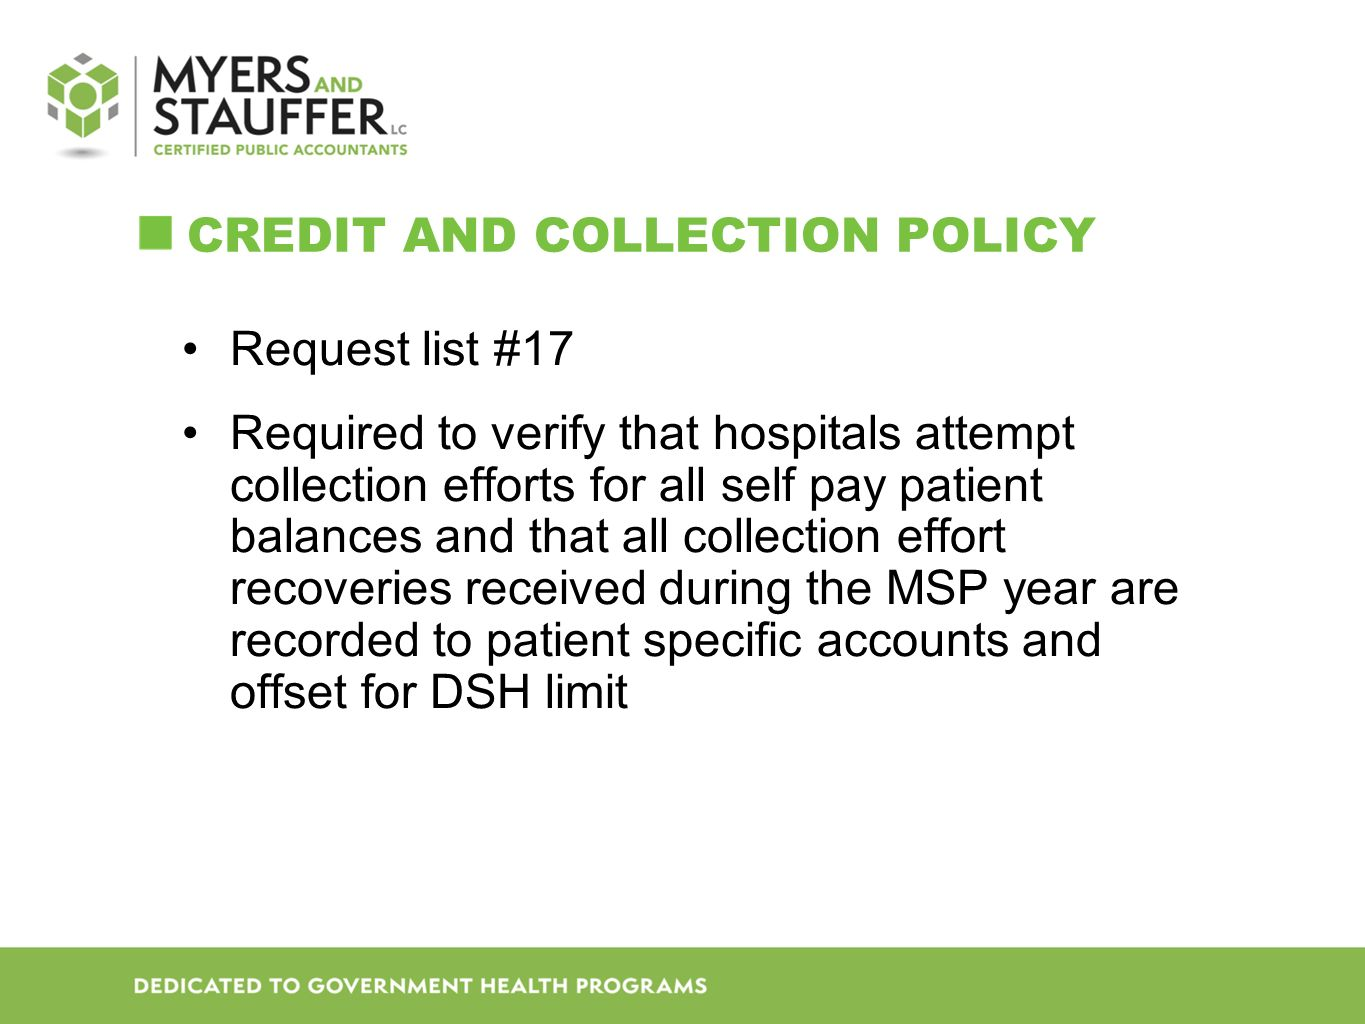 CREDIT AND COLLECTION POLICY Request list #17 Required to verify that hospitals attempt collection efforts for all self pay patient balances and that all collection effort recoveries received during the MSP year are recorded to patient specific accounts and offset for DSH limit